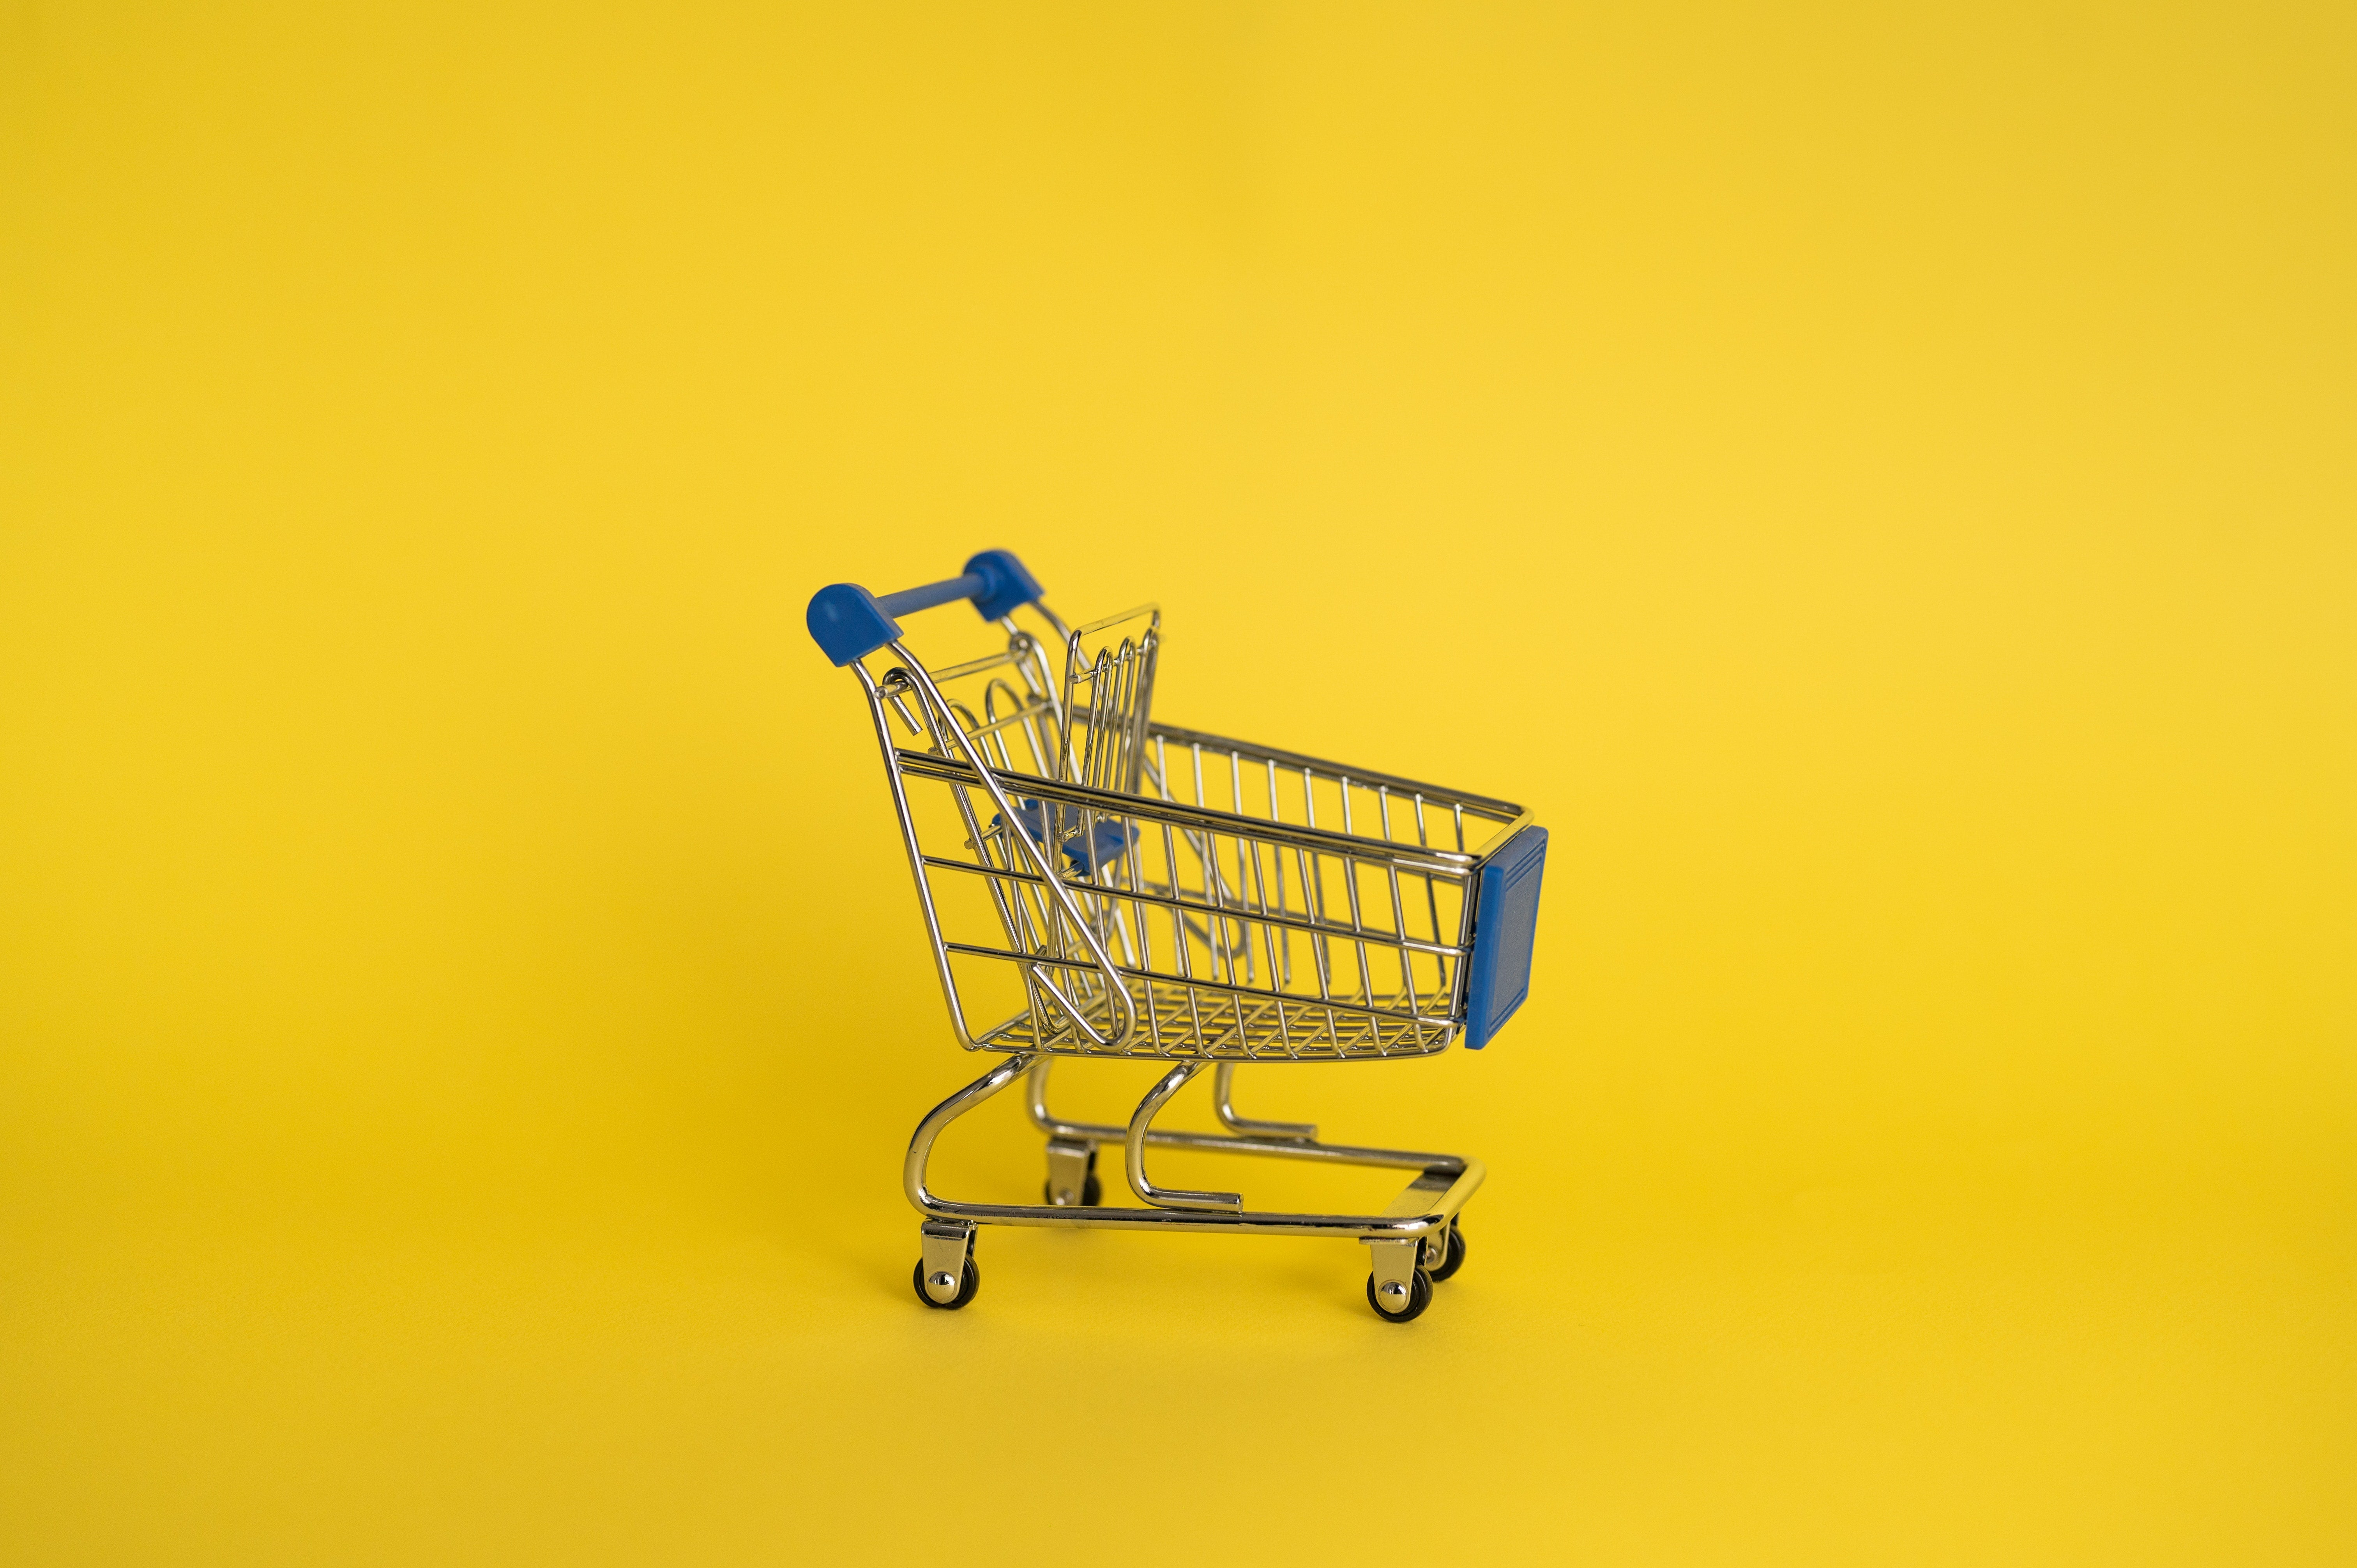 A toy shopping trolley on yellow